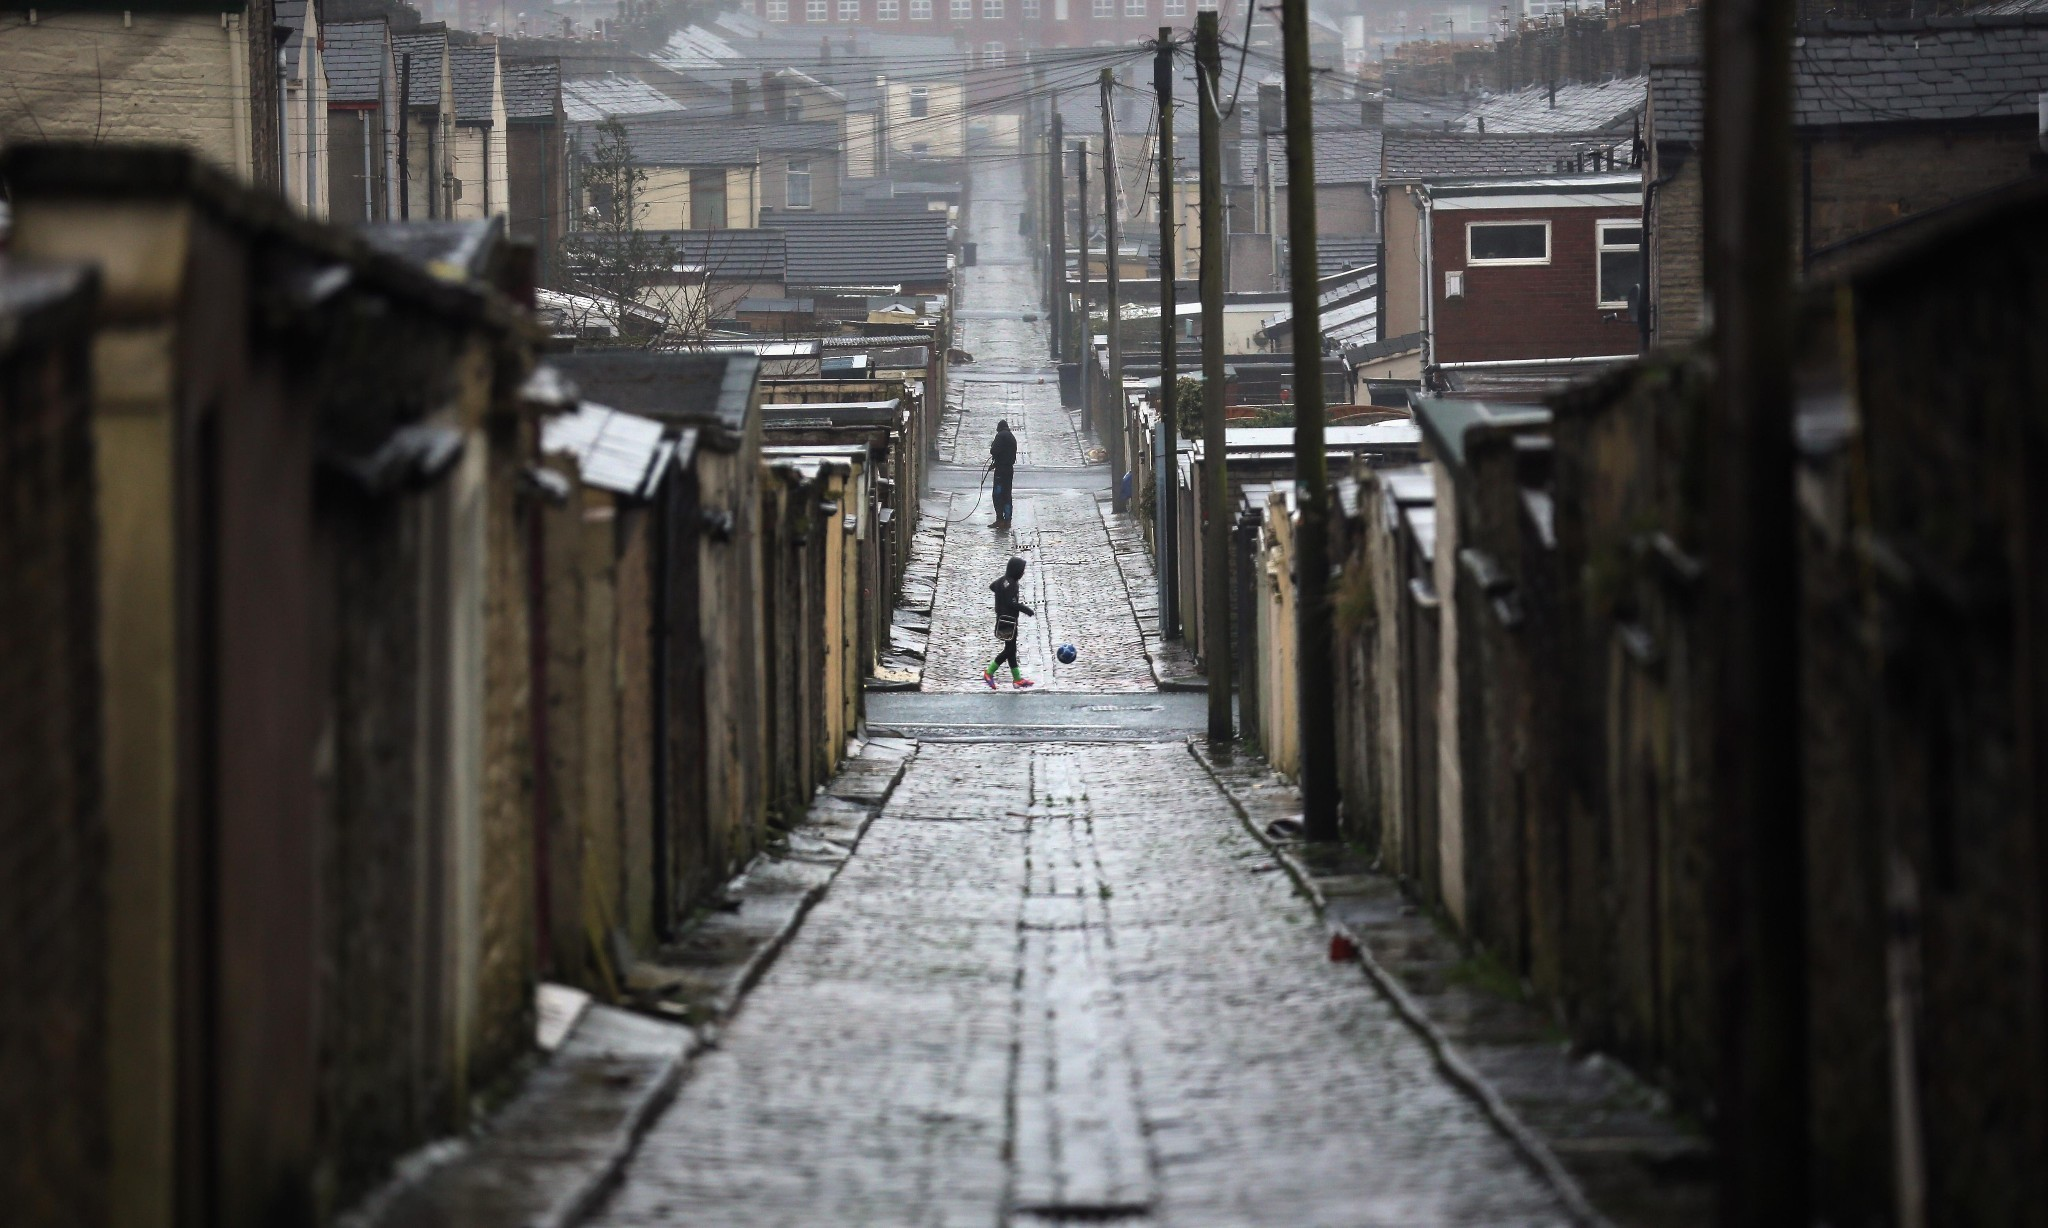 No simple solutions to England's housing troubles